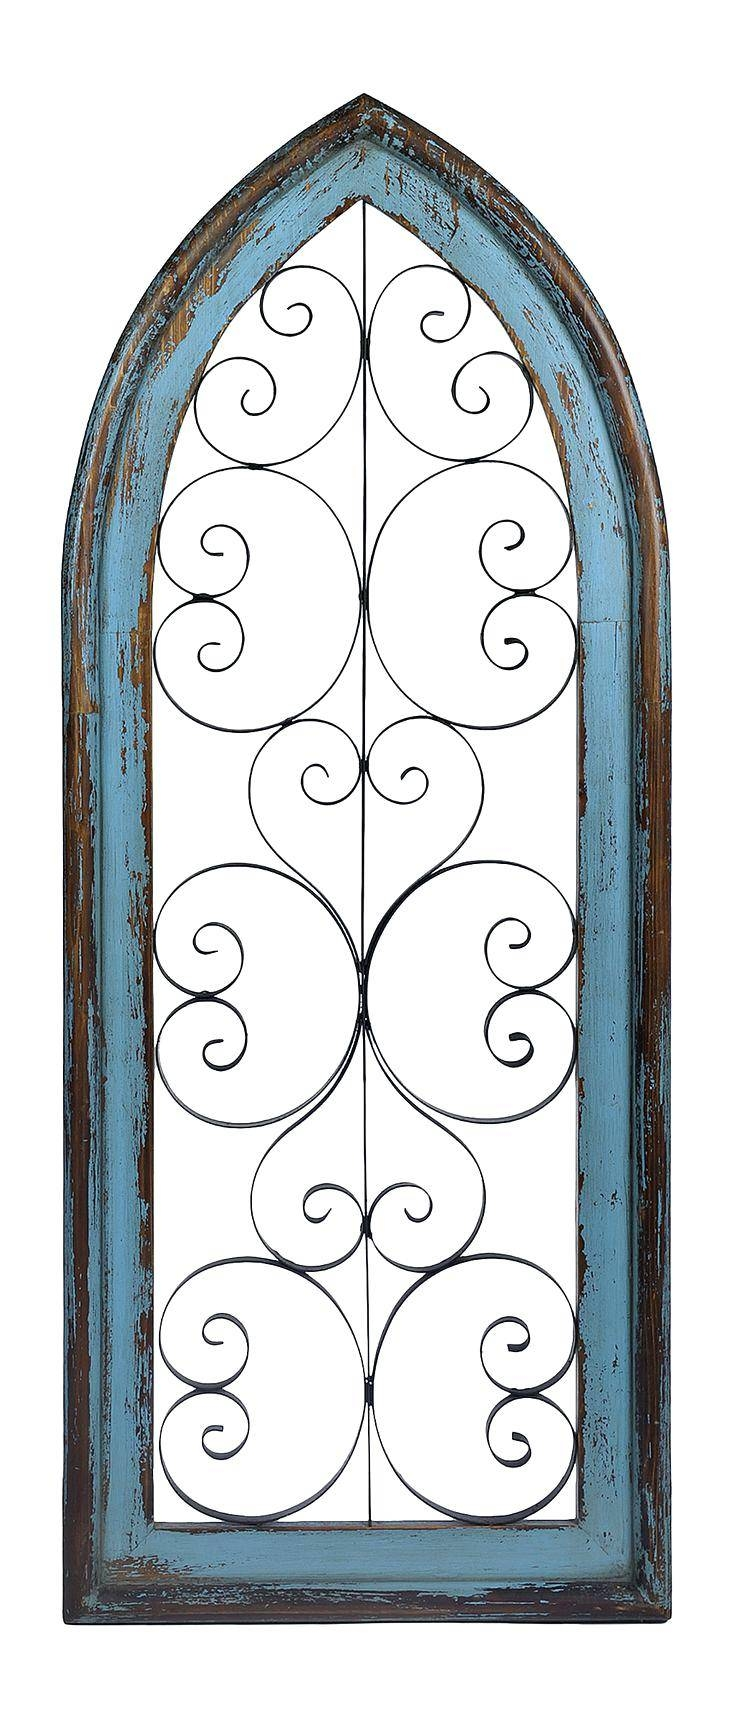 Wall Decor : 20 Wall Ideas Metal Gate Wall Art Details About For Recent Iron Gate Wall Art (View 14 of 25)